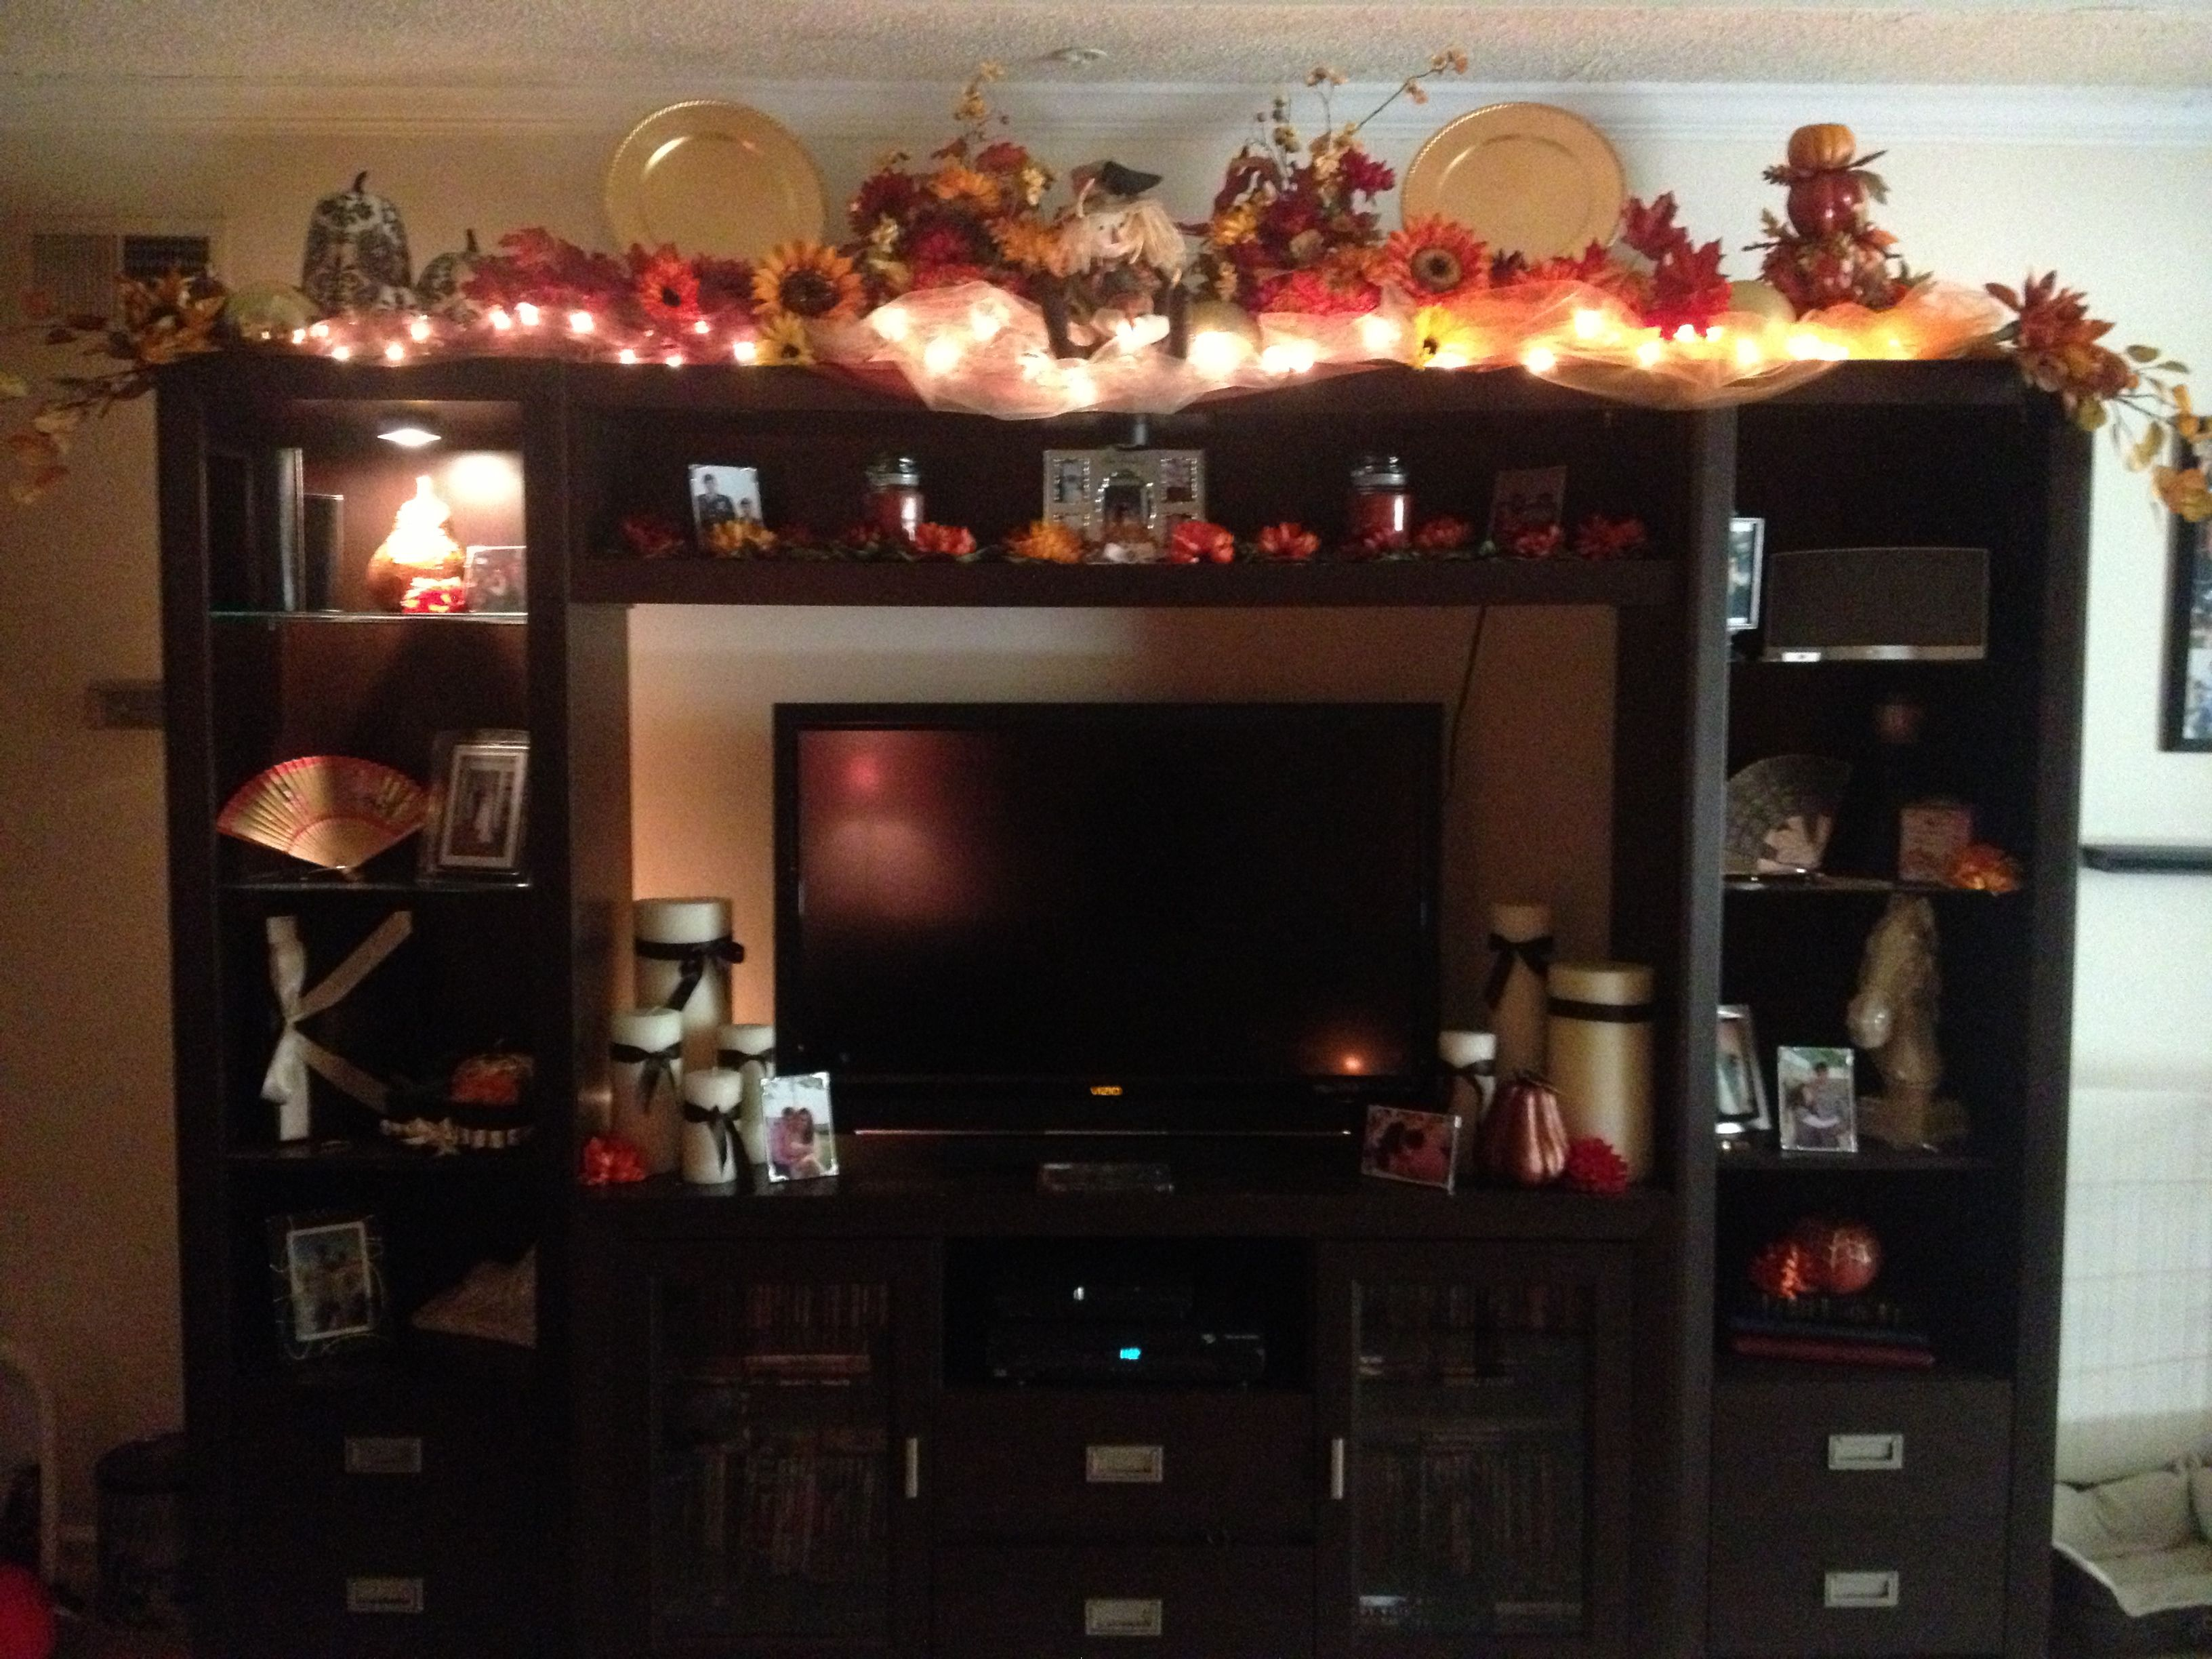 Festive season/holiday decor for top of entertainment ...